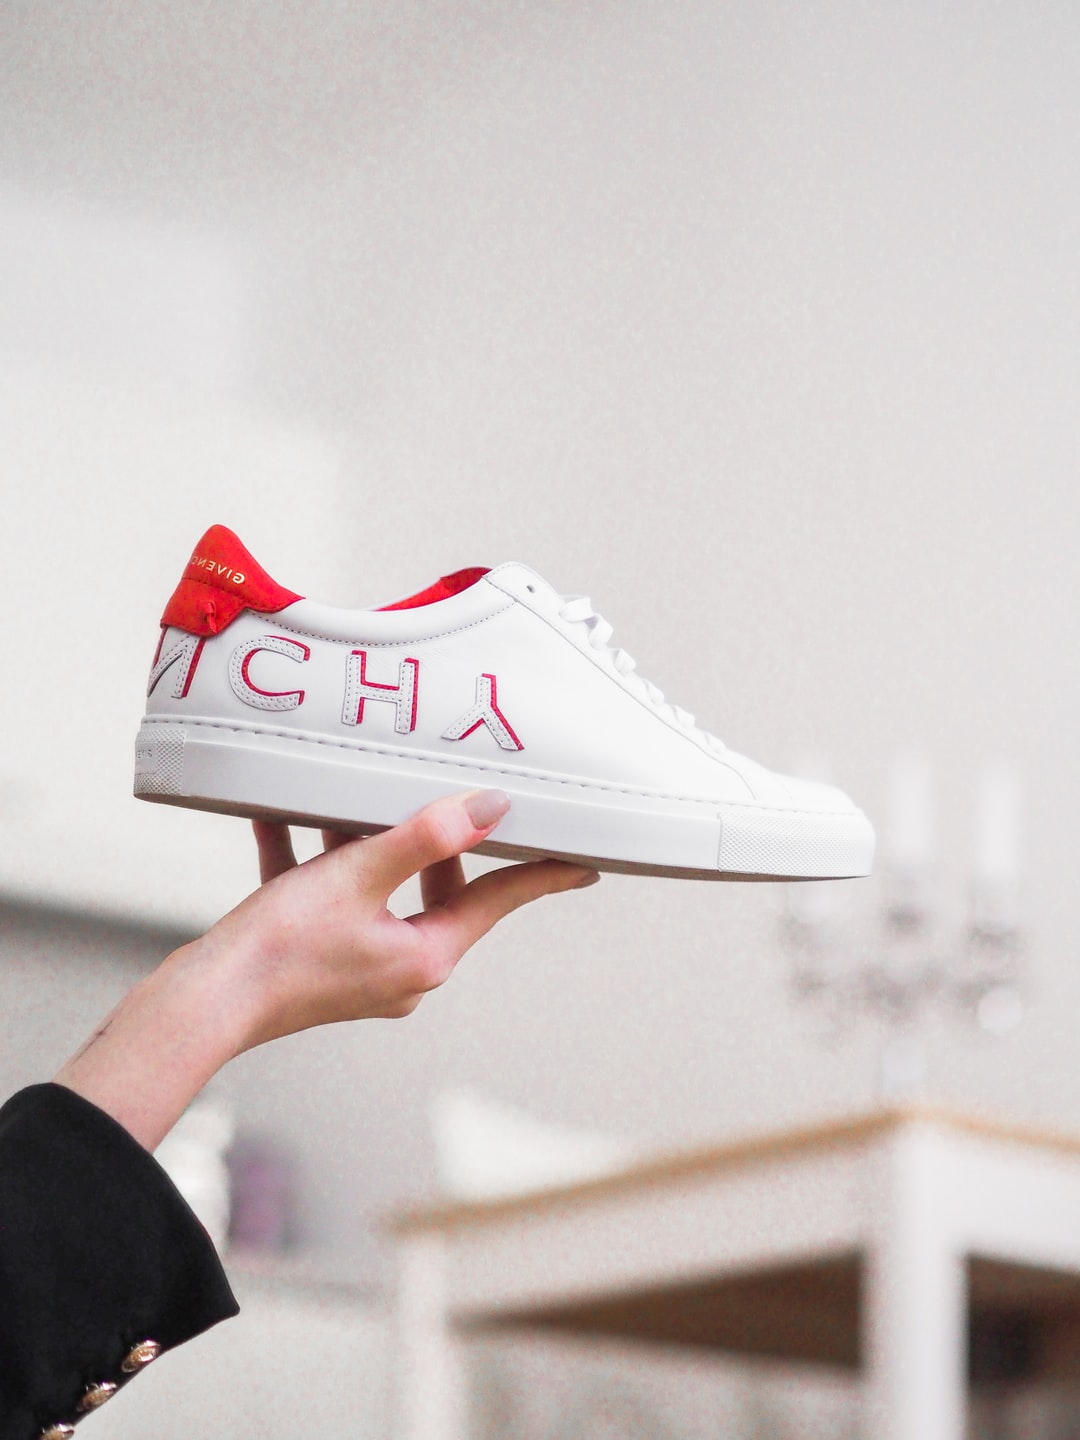 5 Insider Tips on How to Buy Sneakers Online